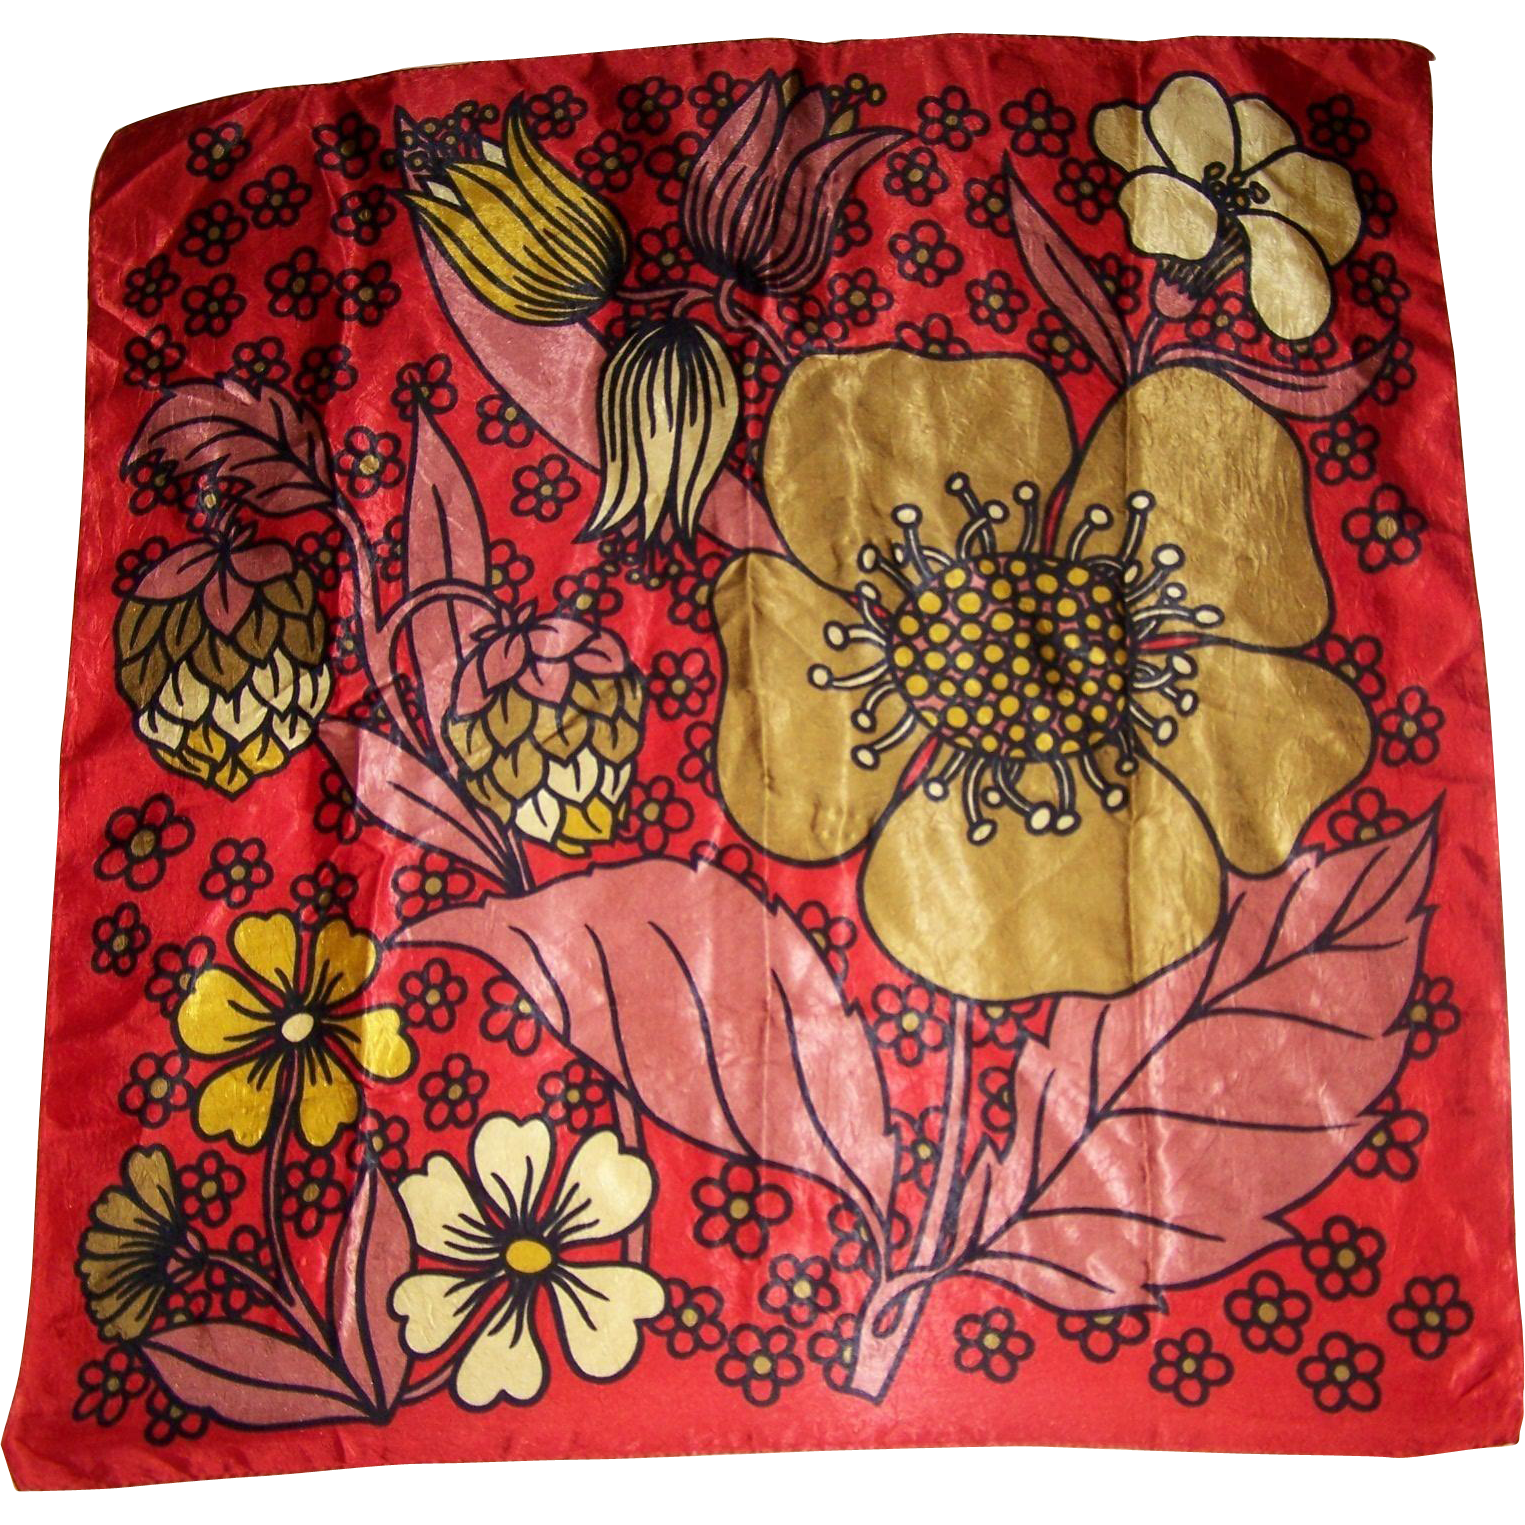 Vintage Groovy Mod Pop Art Flowers Buds Leaves  Flowering Strawberries Ladies Fashion Scarf